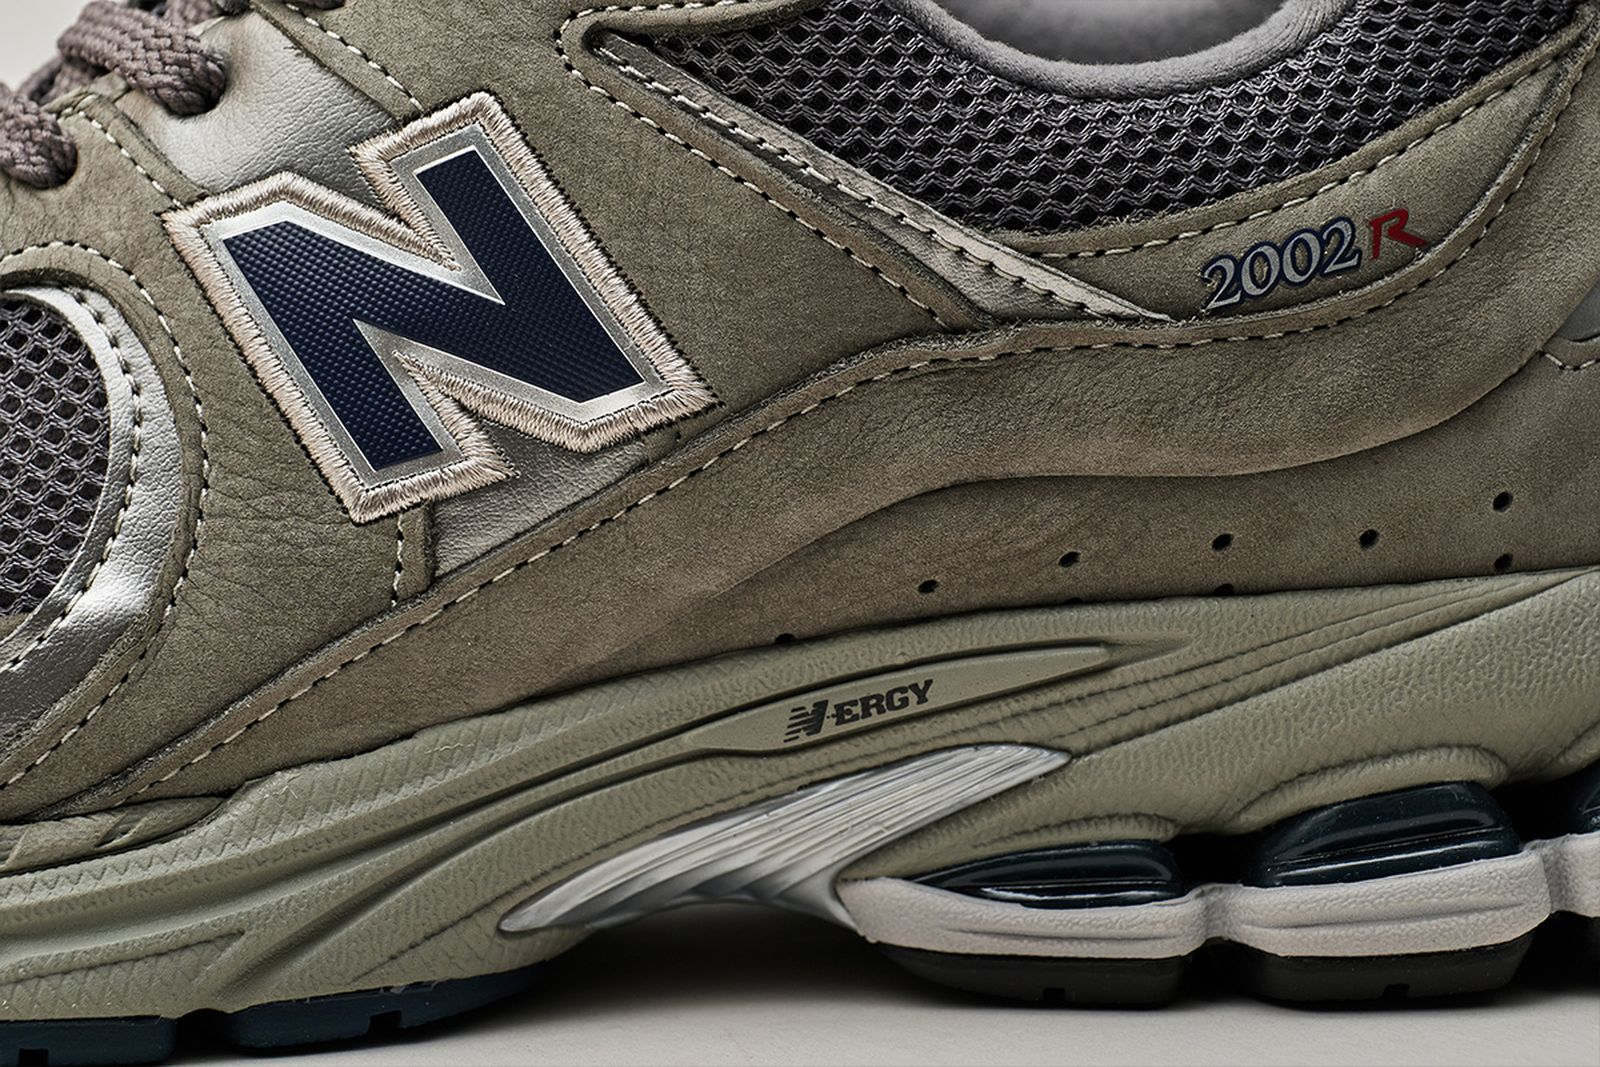 new-balance-2002r-release-date-price-08